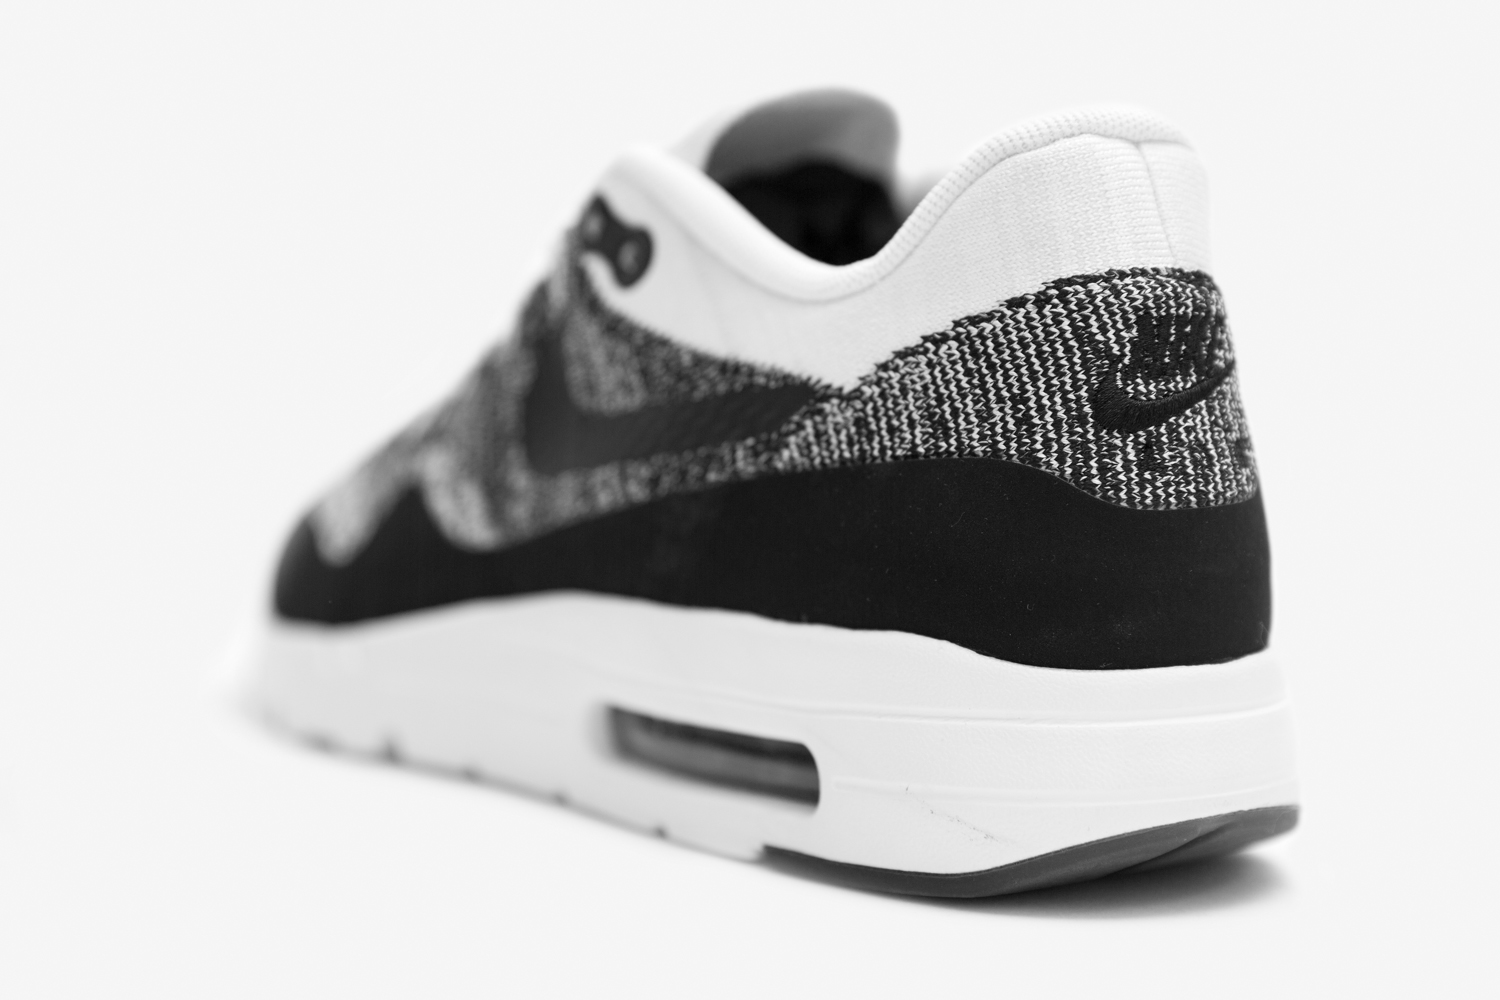 cb3e6731b769 nike air max 1 flyknit size-2 nike air max 1 flyknit size-7  nike air max 1 flyknit size-5. The Air Max 1 ...